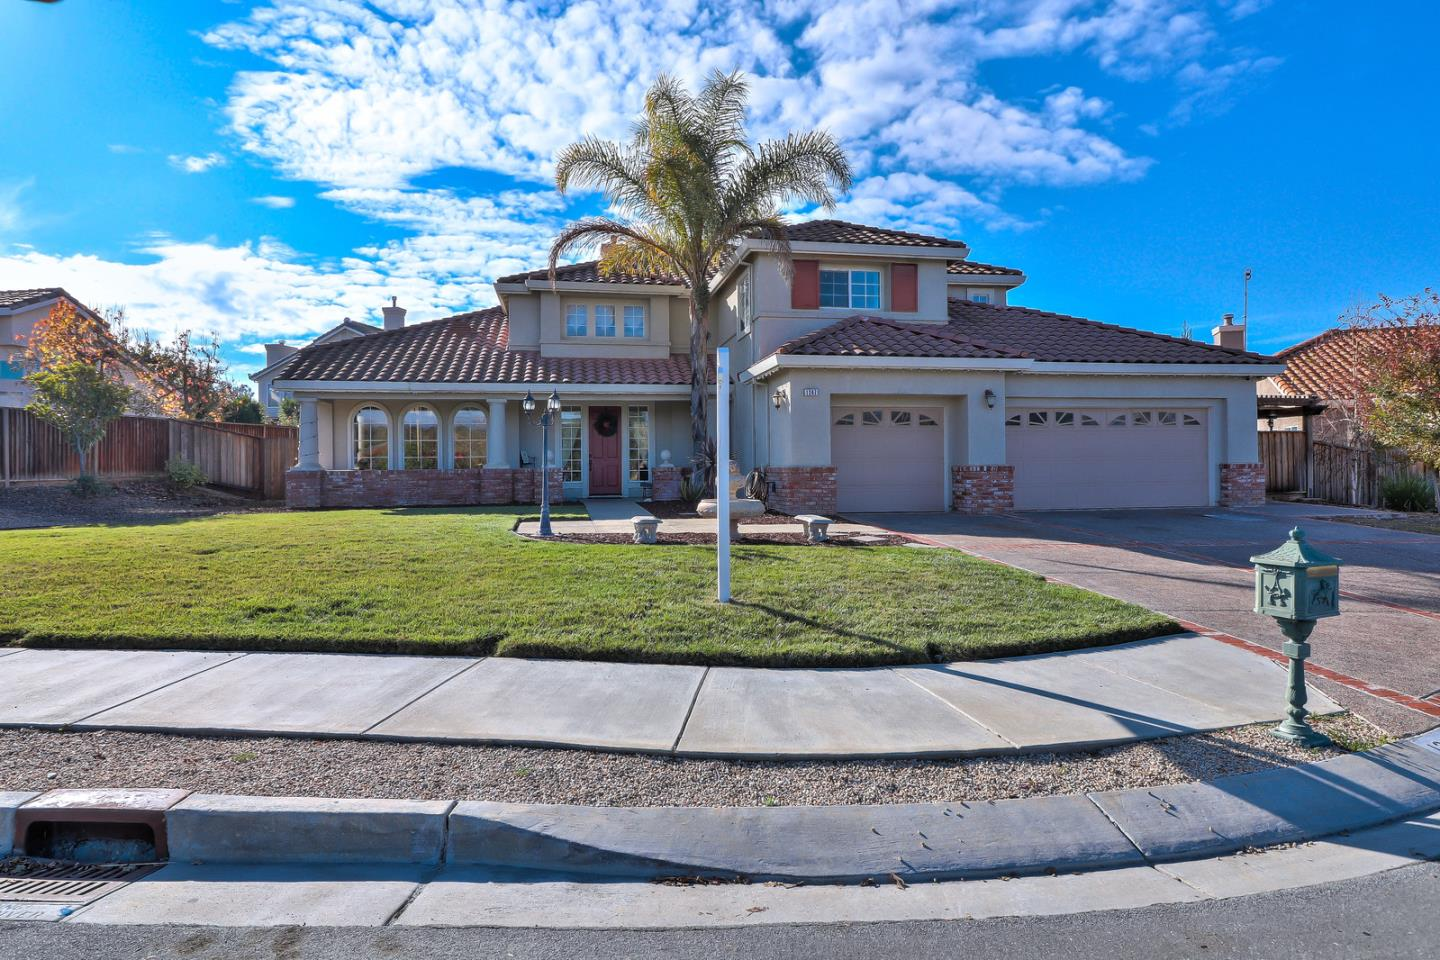 Detail Gallery Image 1 of 1 For 1247 Brook View Ct, Hollister, CA, 95023 - 5 Beds   3/1 Baths